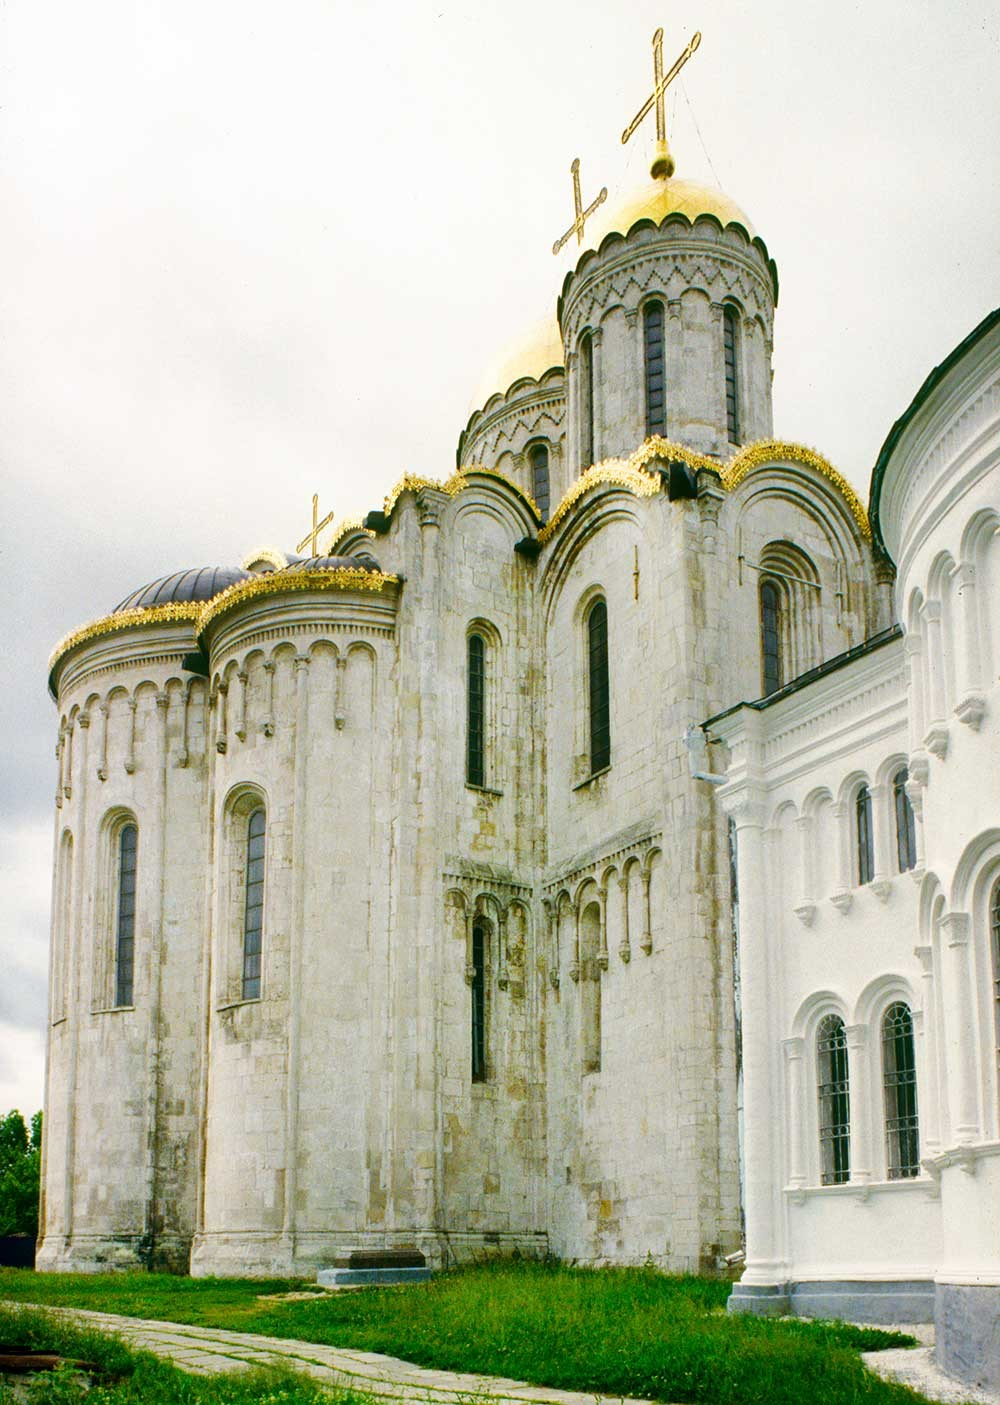 Dormition Cathedral. Northeast view. June 19, 1994.